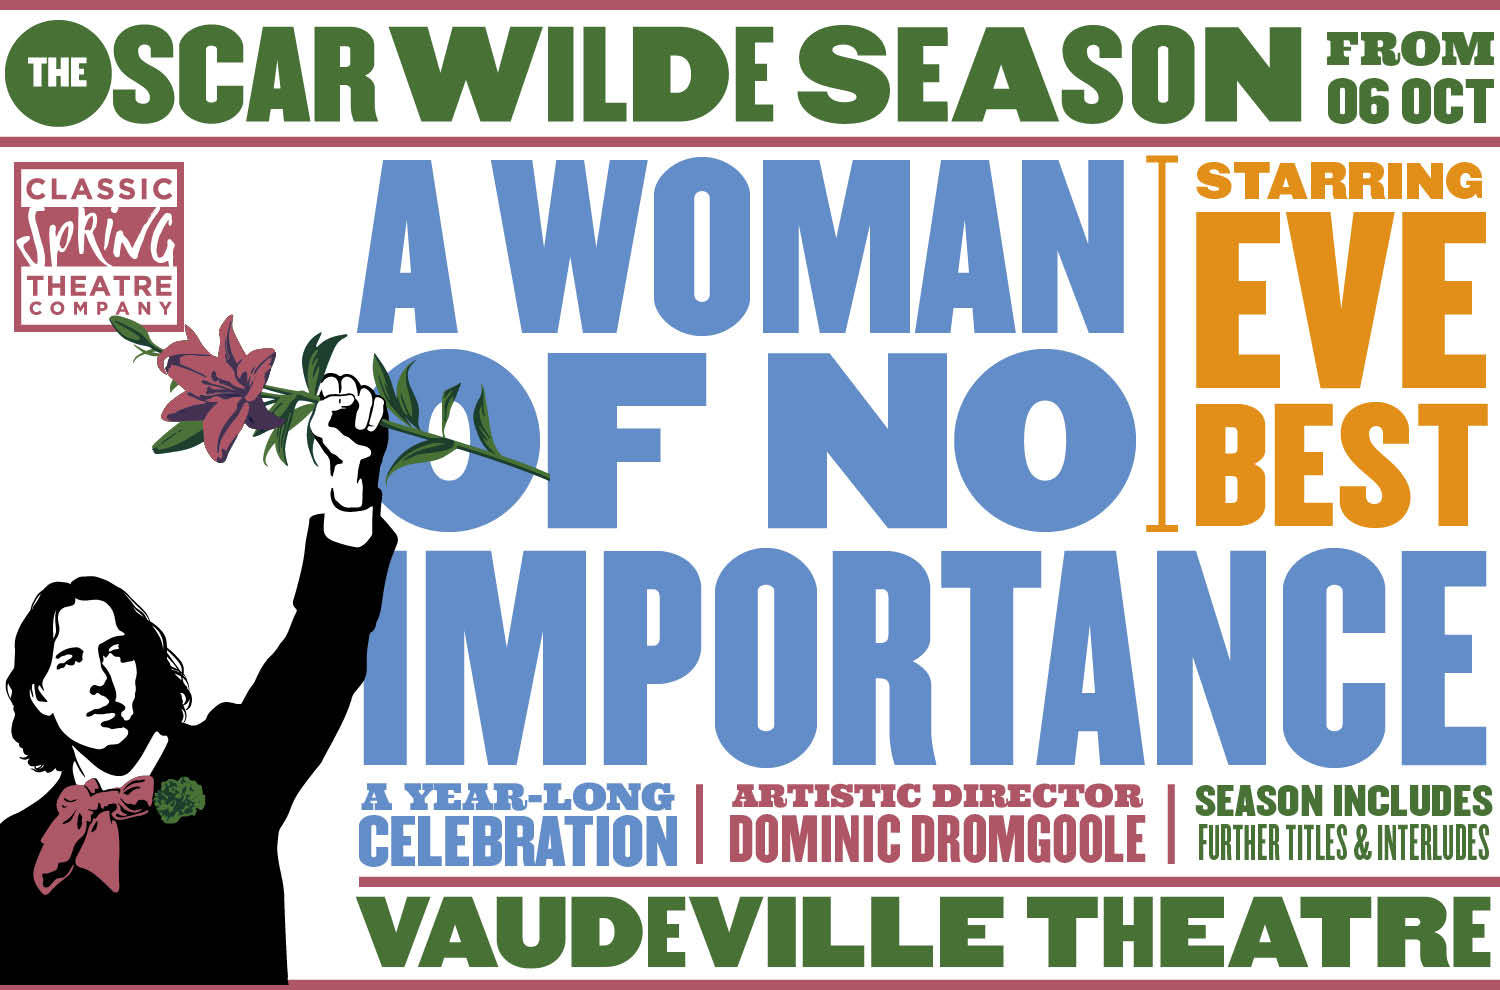 A Woman of No Importance, Dominic Dromgoole, Eve Best, Classic Spring